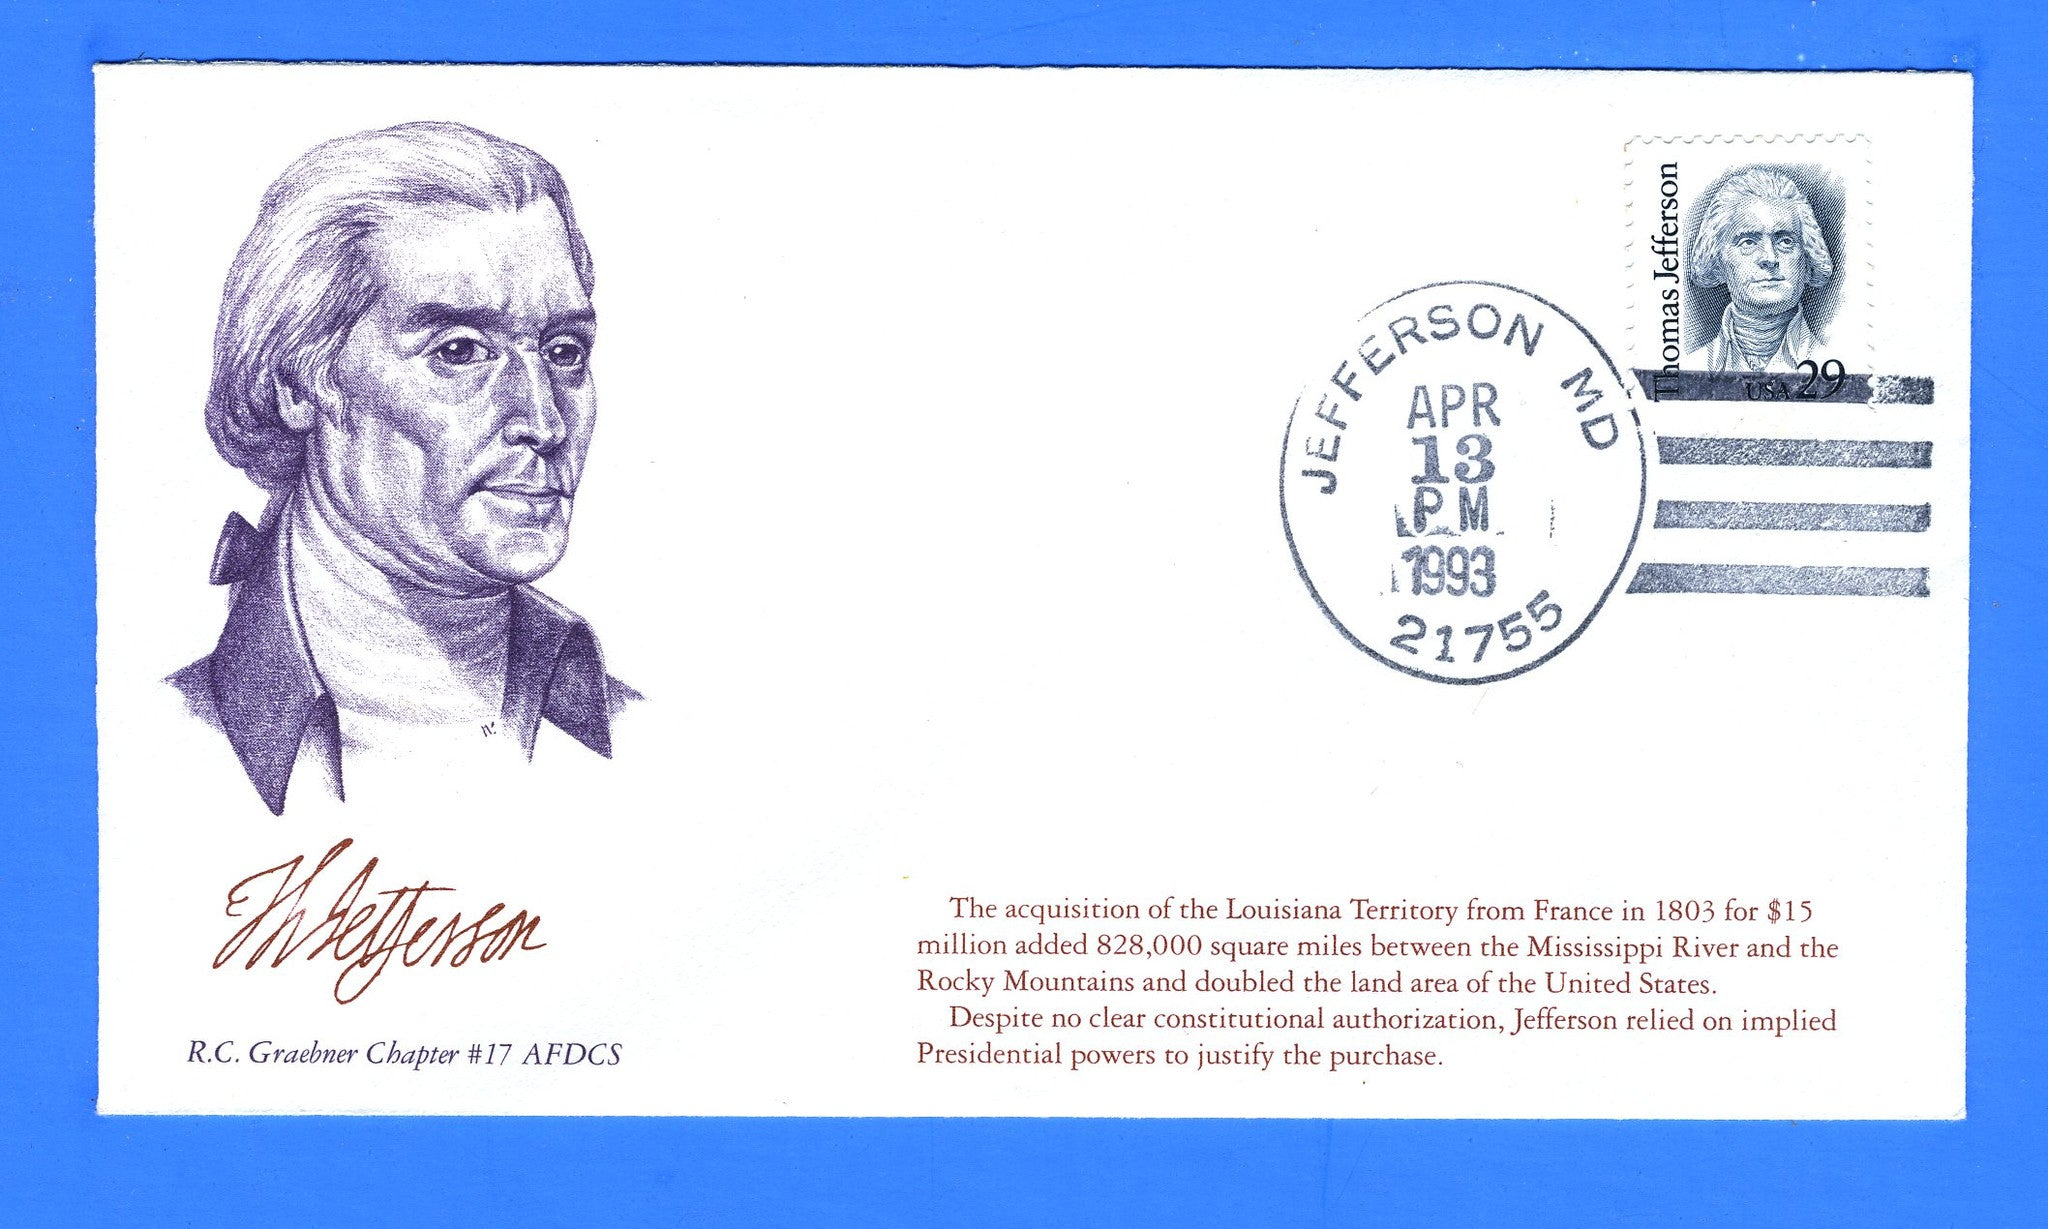 Scott 2185 29c Thomas Jefferson First Day Cover by R.C. Graebner Chapter of the AFDCS - Unofficial Jefferson, MD Cancel